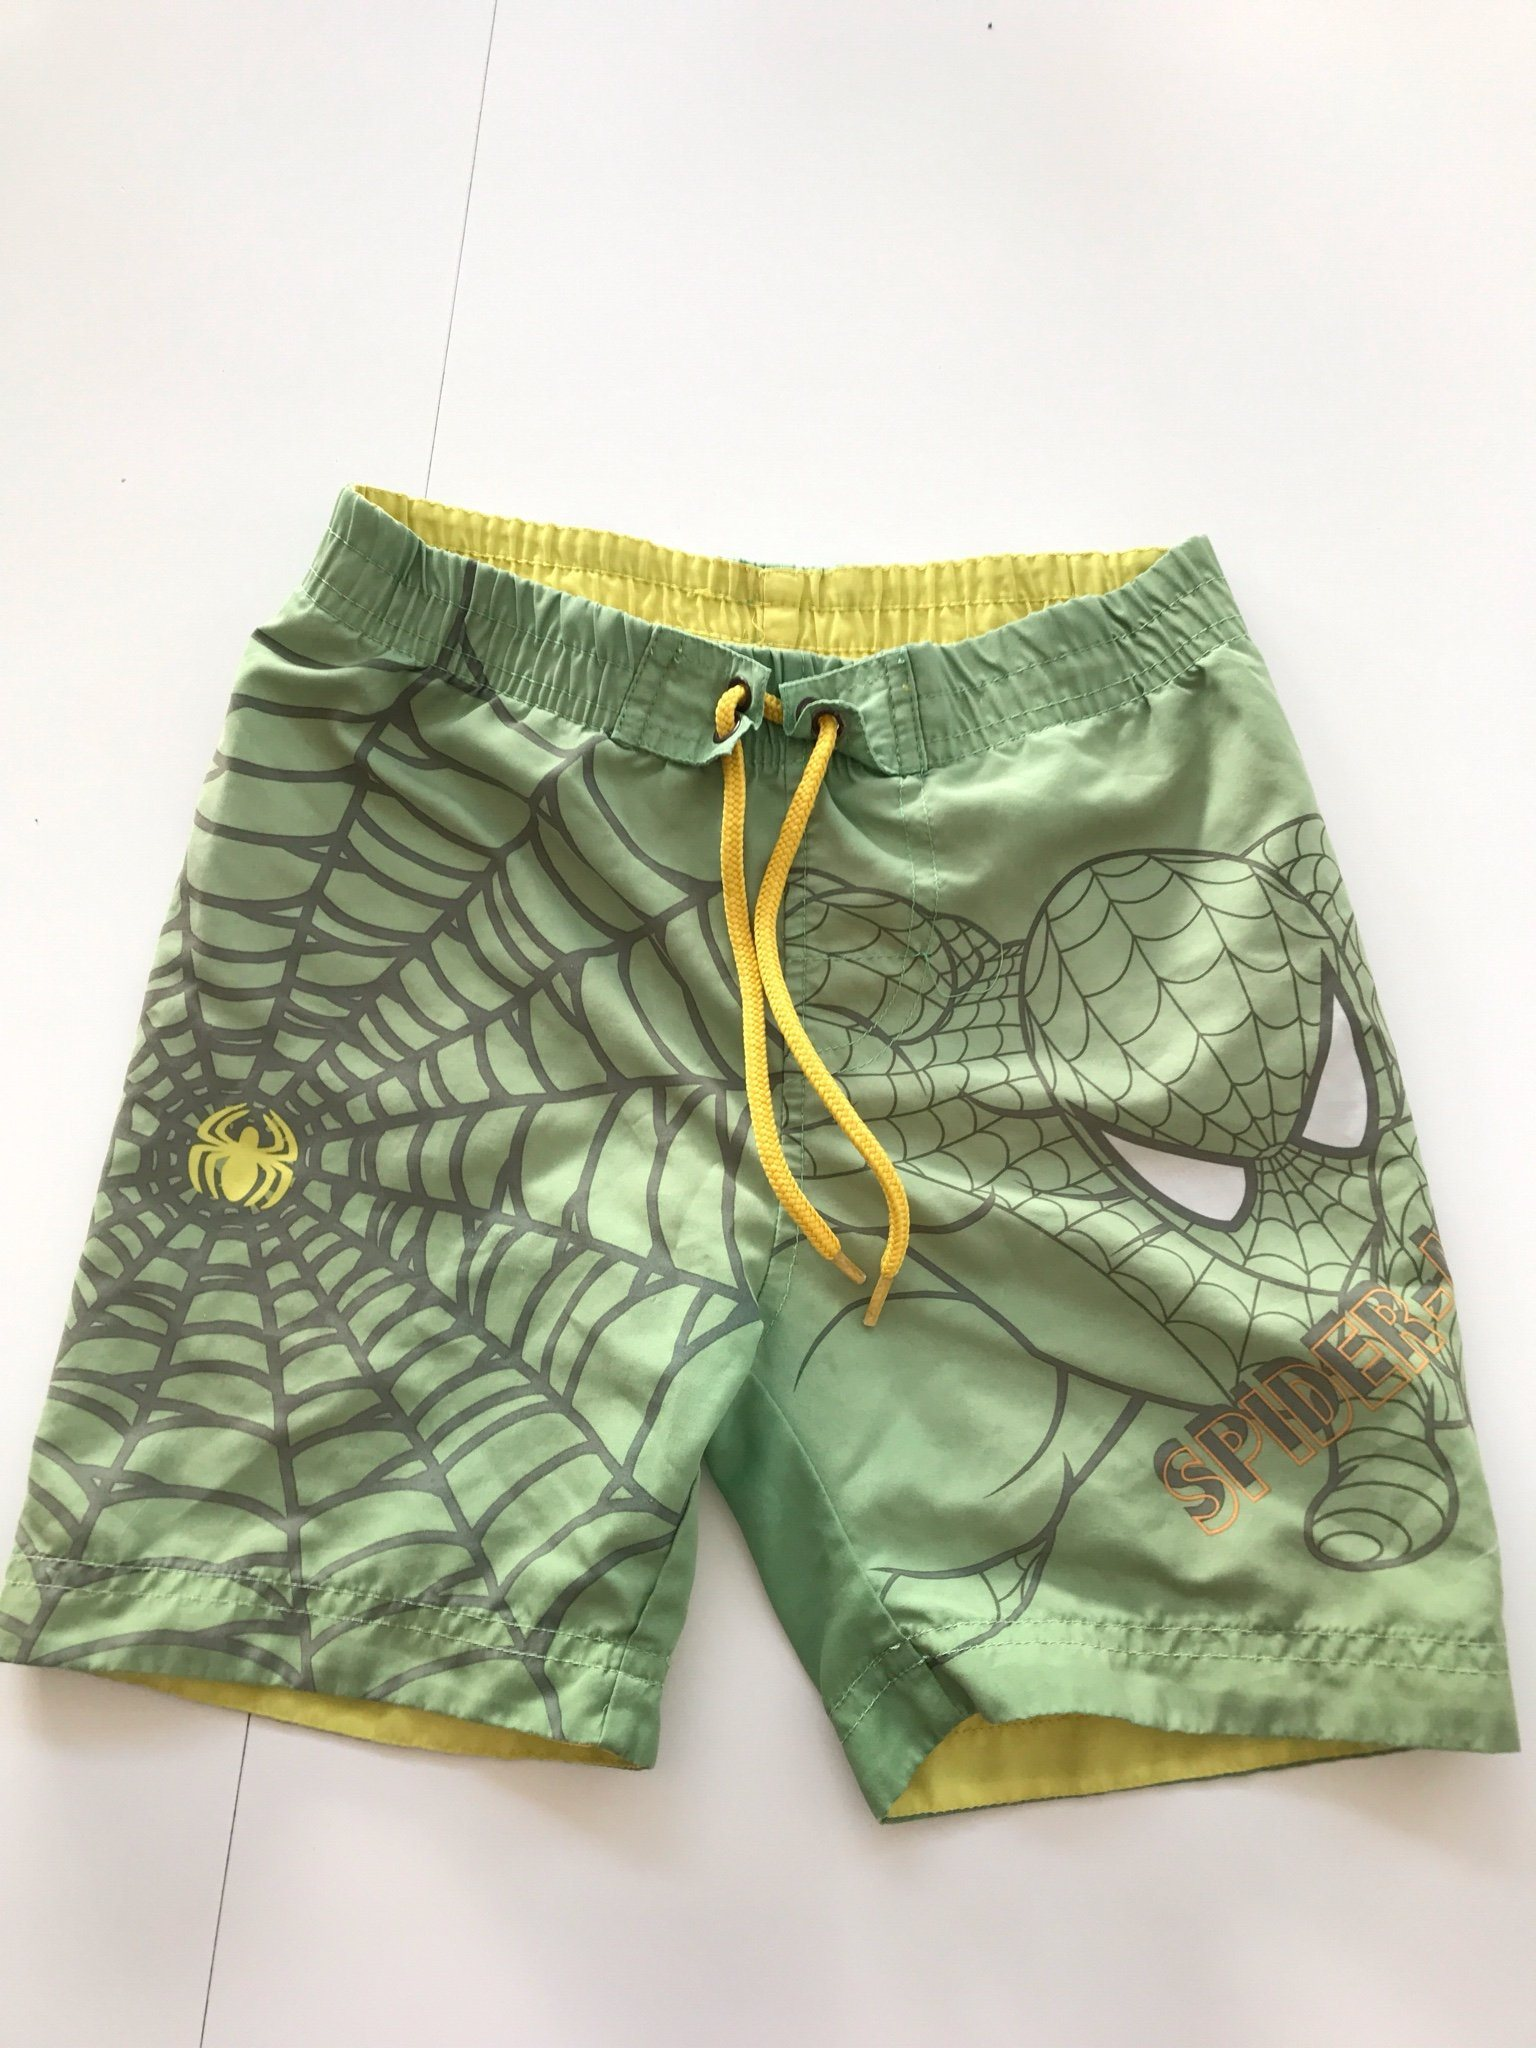 Badbyxor bad shorts Spider Man 110   116 kappahl (341160679) ᐈ Köp ... cfa8bcadbf0ed